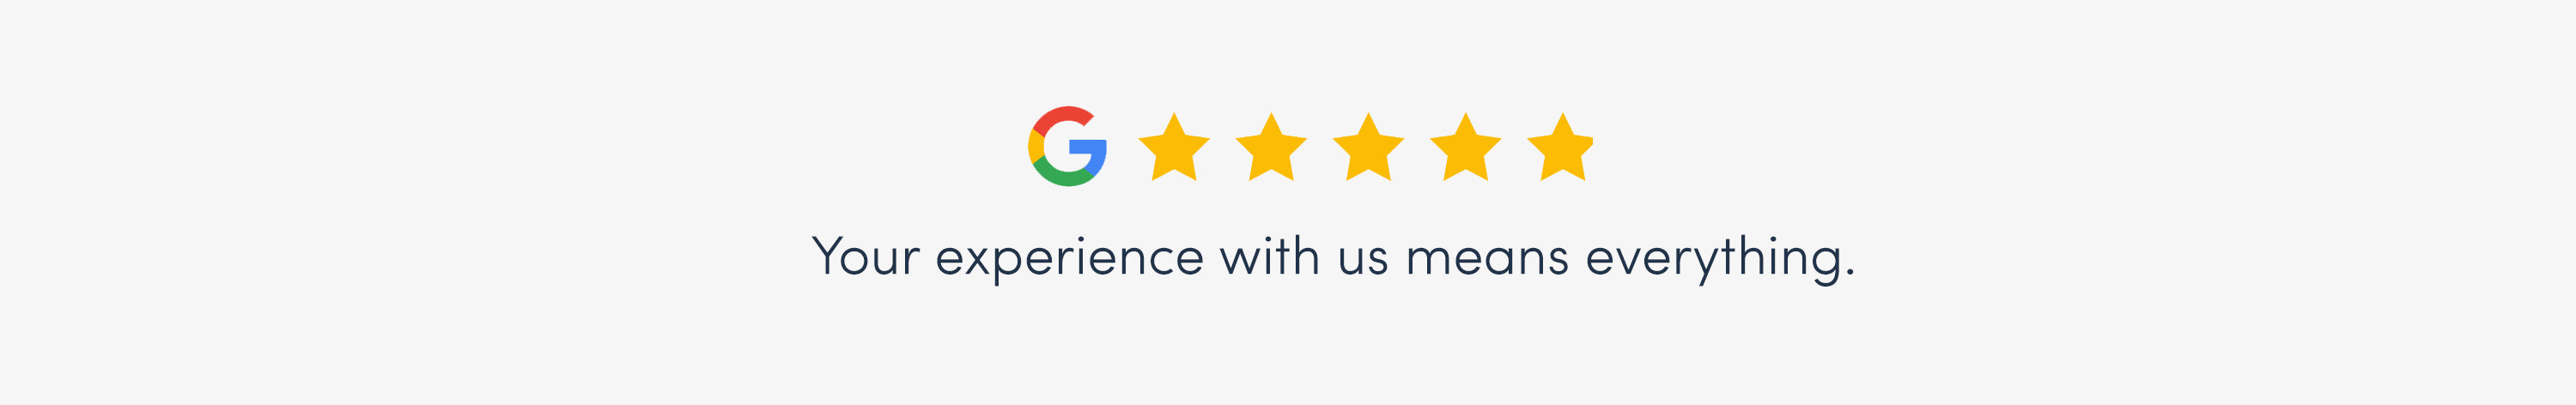 SMITH&SMITH Lighting Google Rating 5/5 By Existing Customers